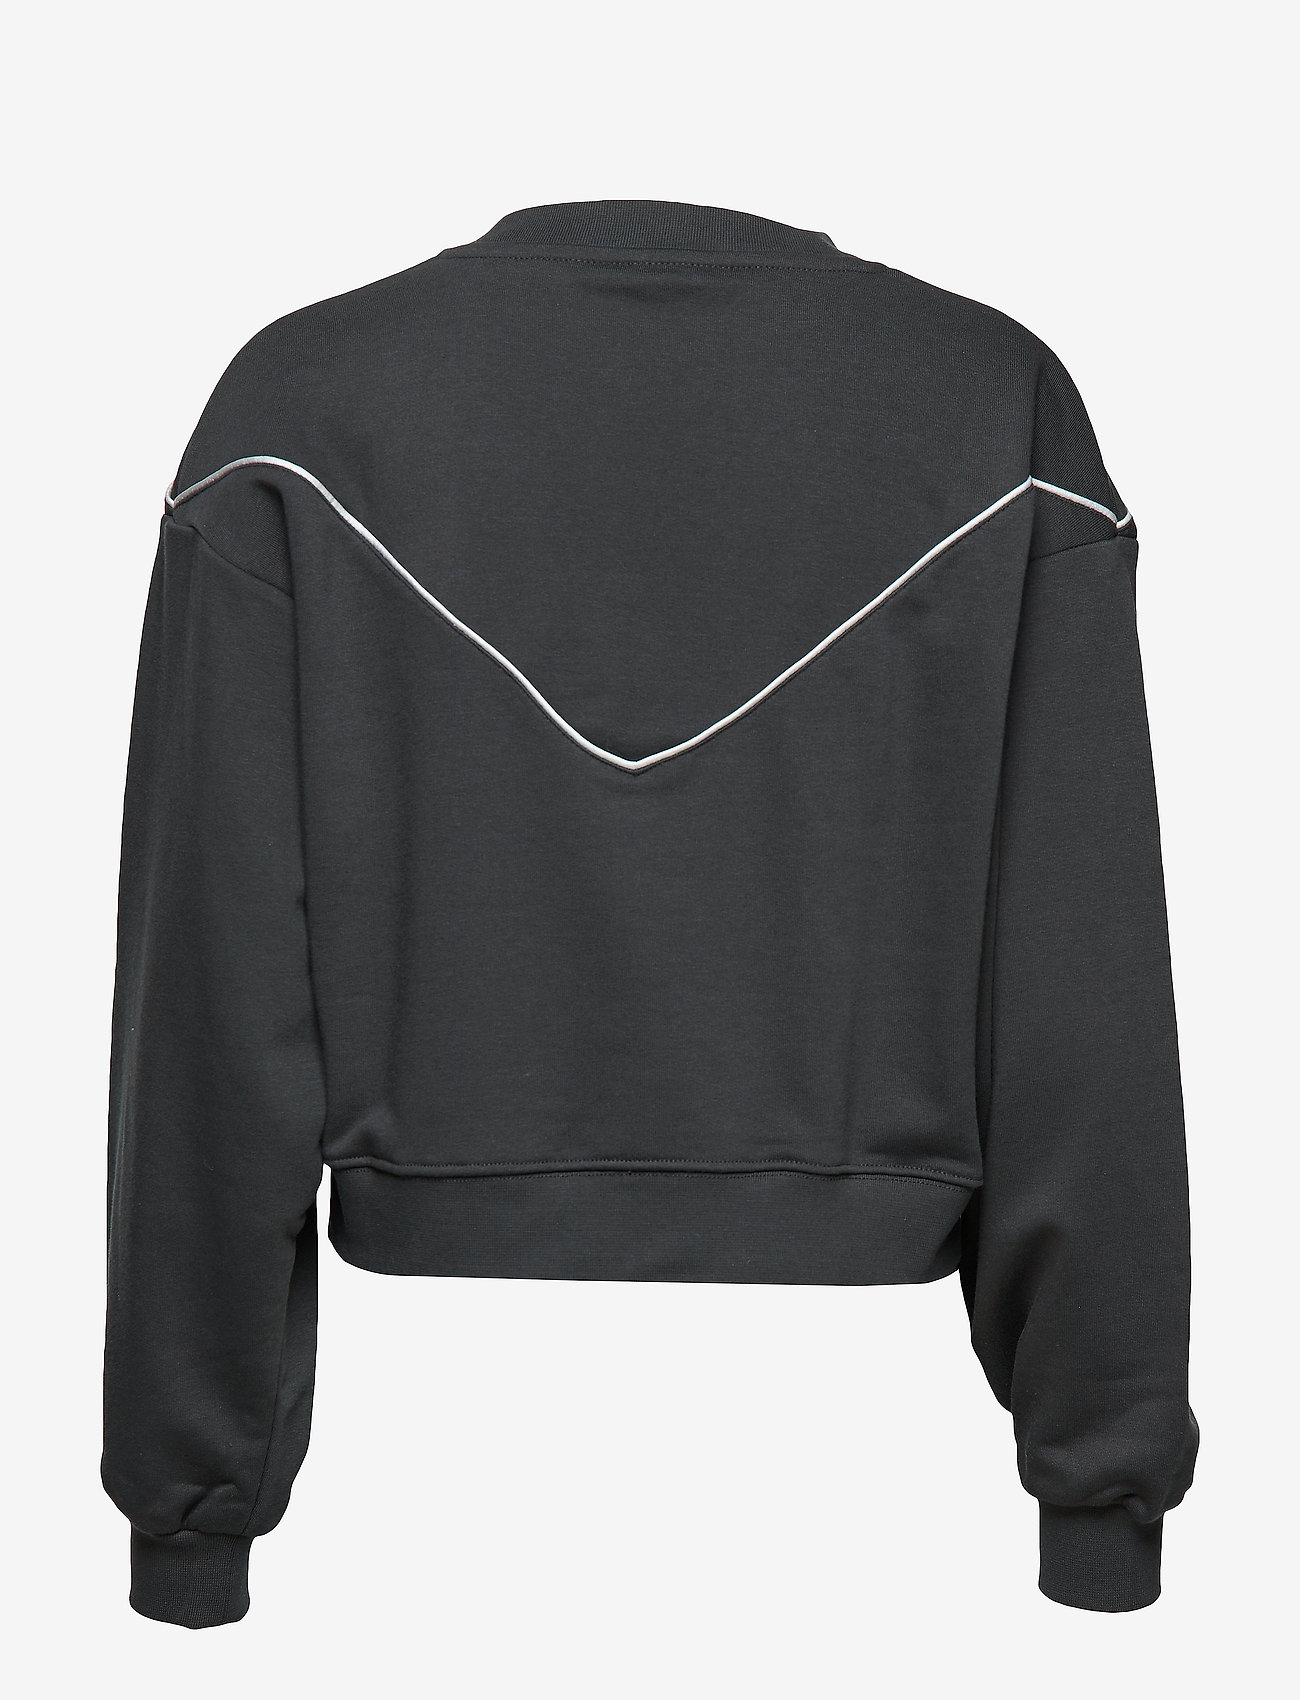 80´s Sweat (Faded Black) - Wrangler hsz5yn